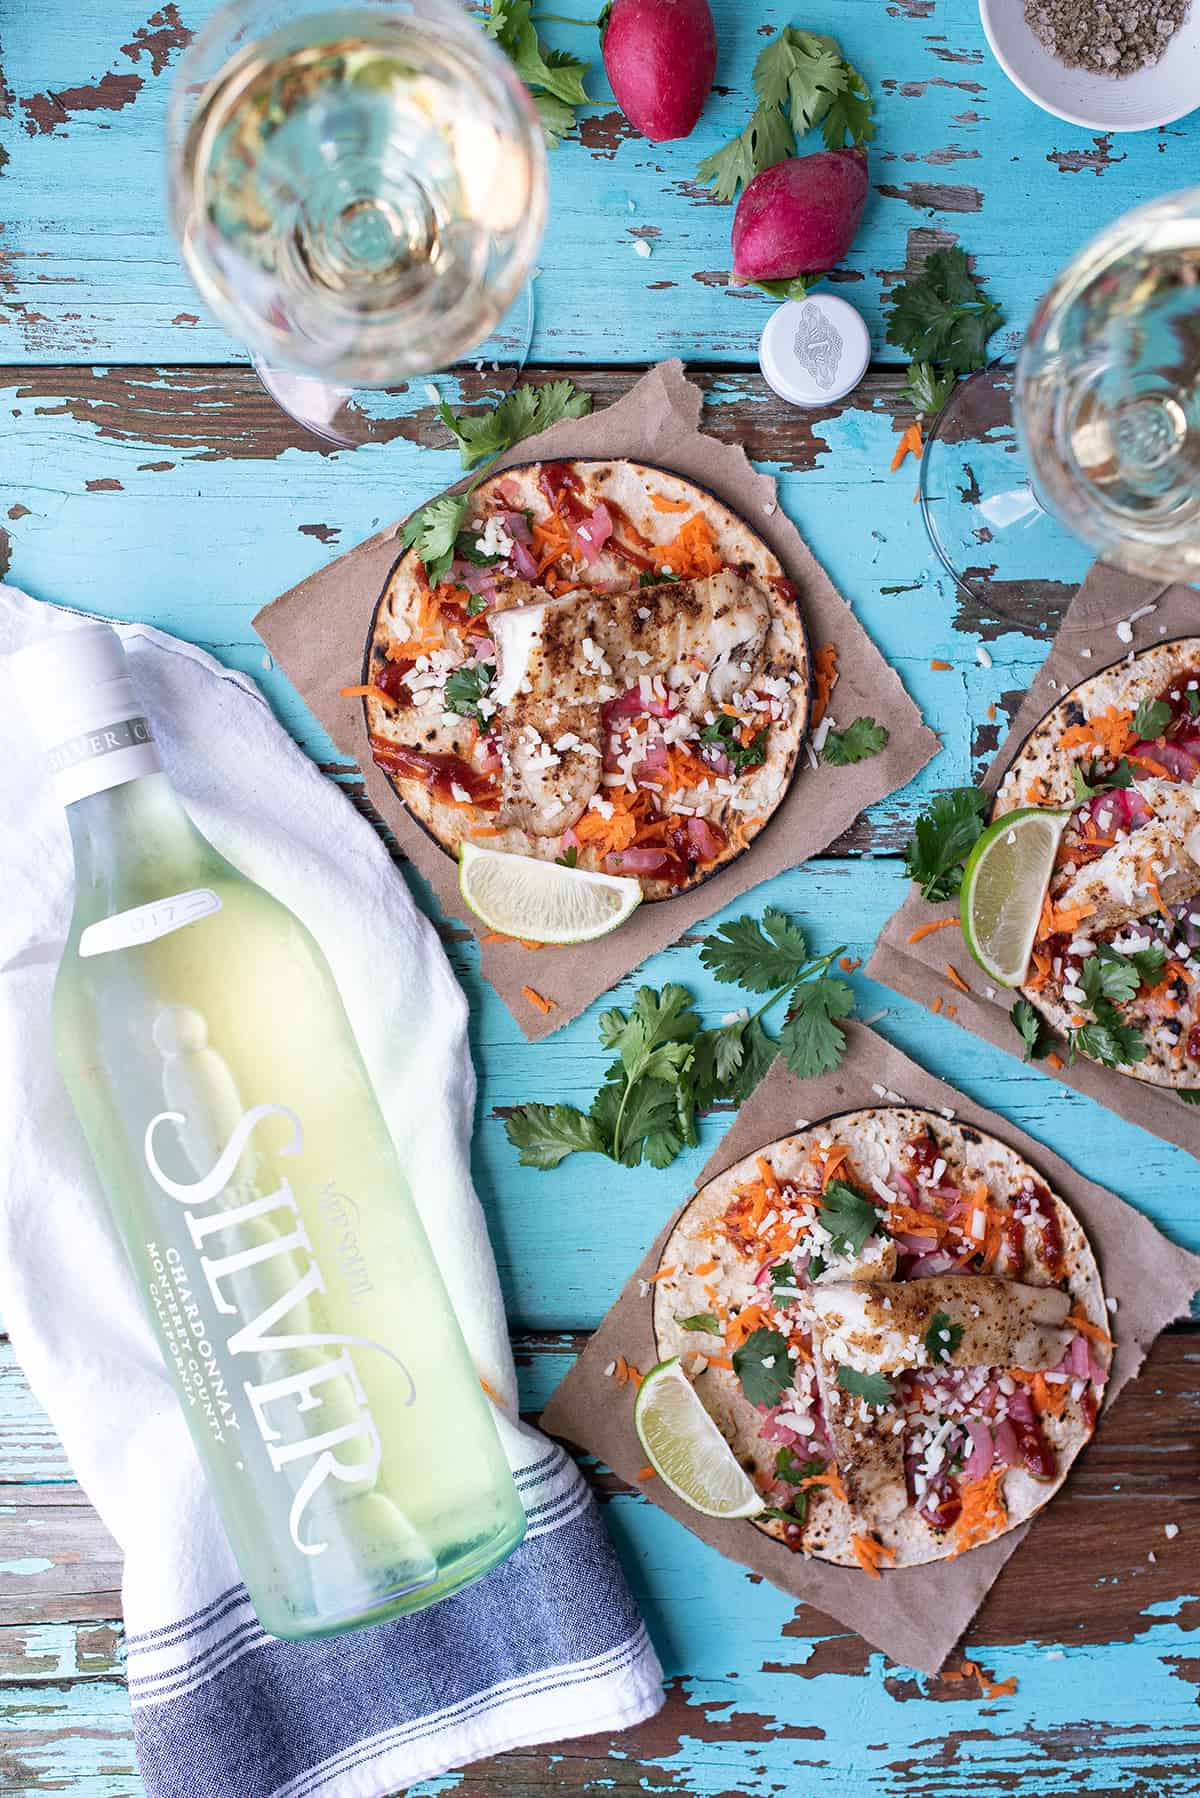 Fish Tostadas with Mer Soleil SILVER chardonnay bottle